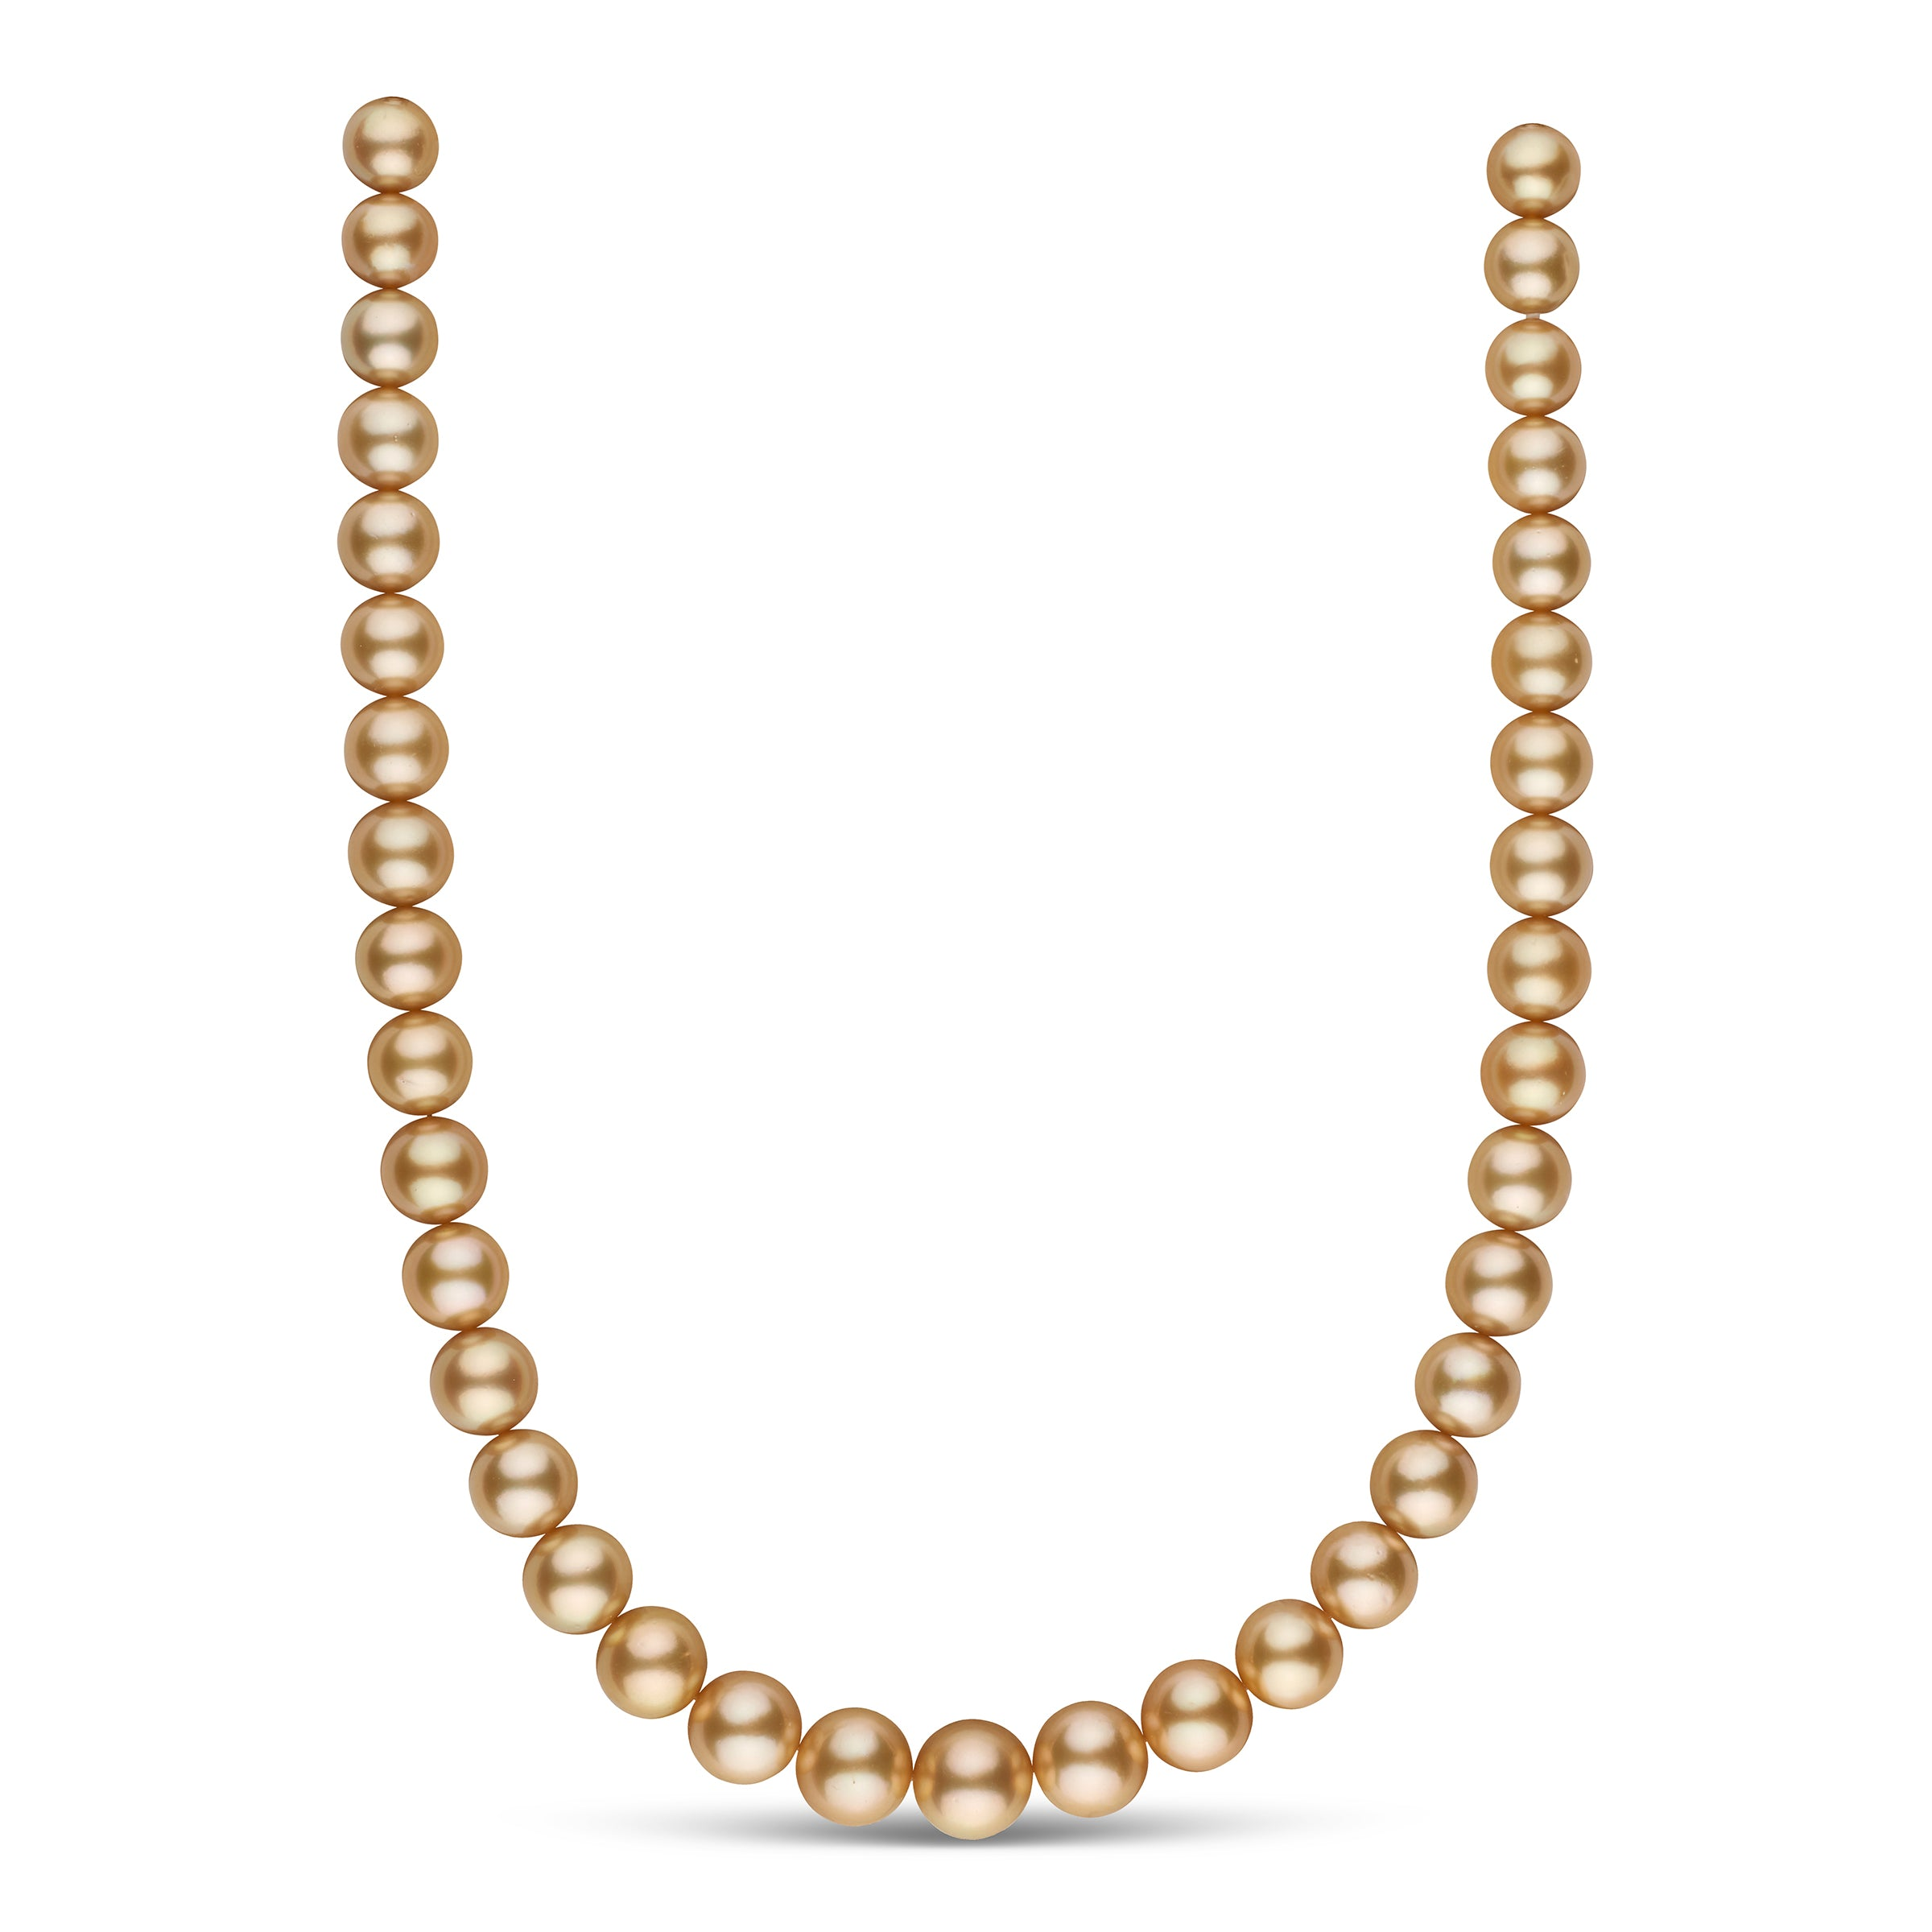 The Mary Tyler Moore Golden South Sea Pearl Necklace